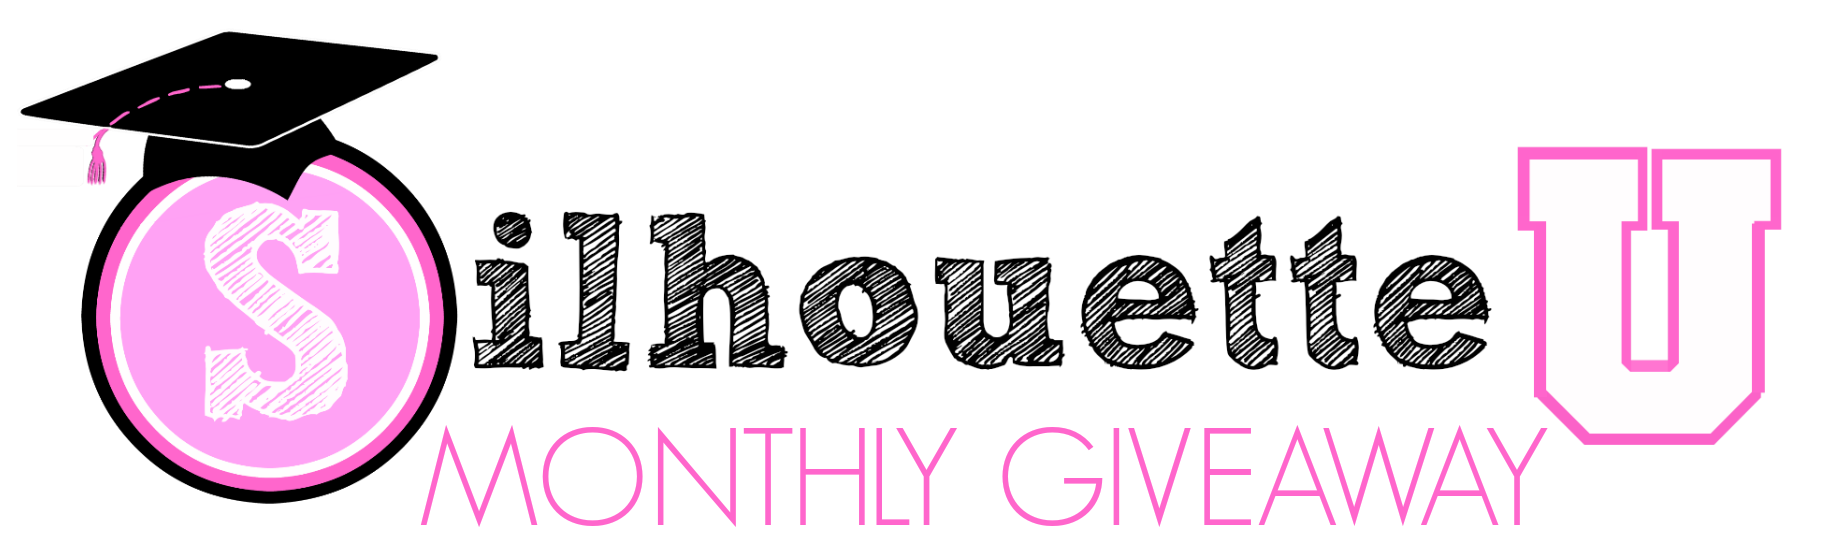 SU giveaway banner.png